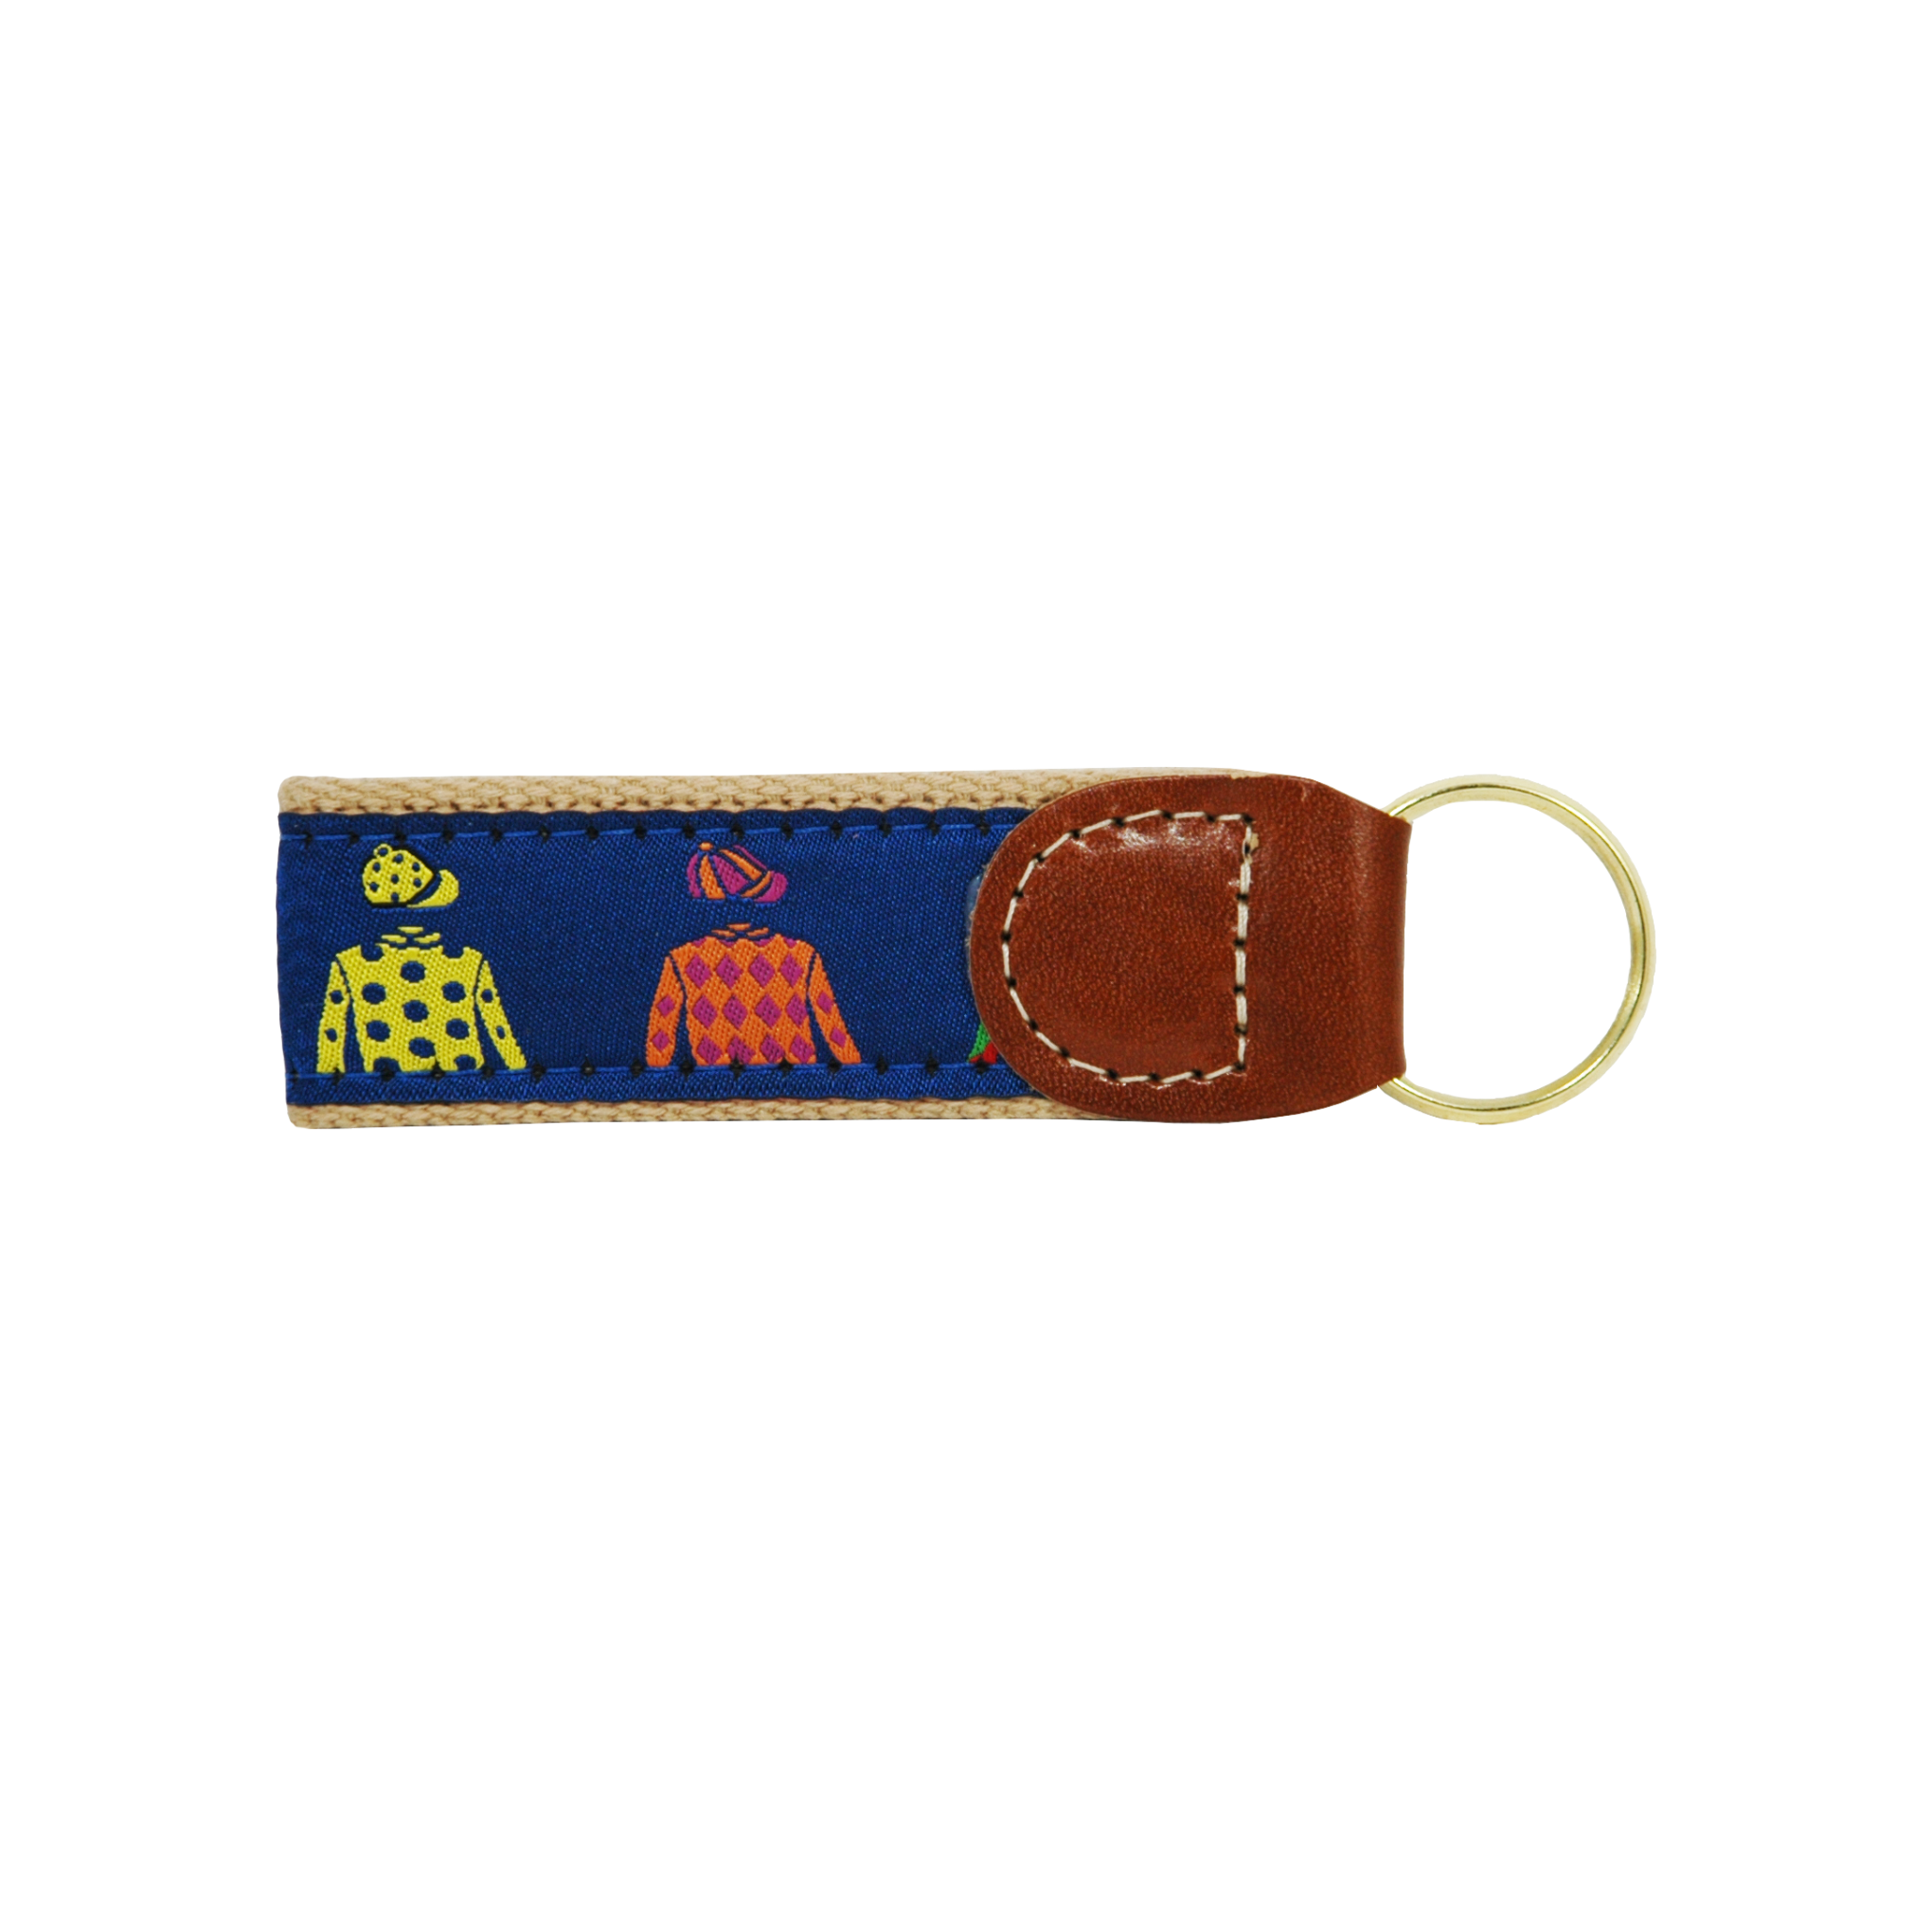 Jockey Silks Ribbon Key Fob